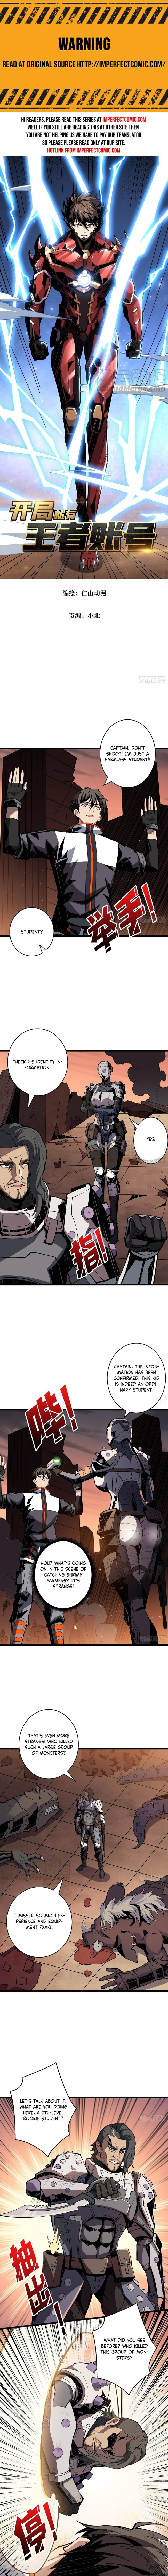 It Starts with a kingpin account - chapter 66 - #2